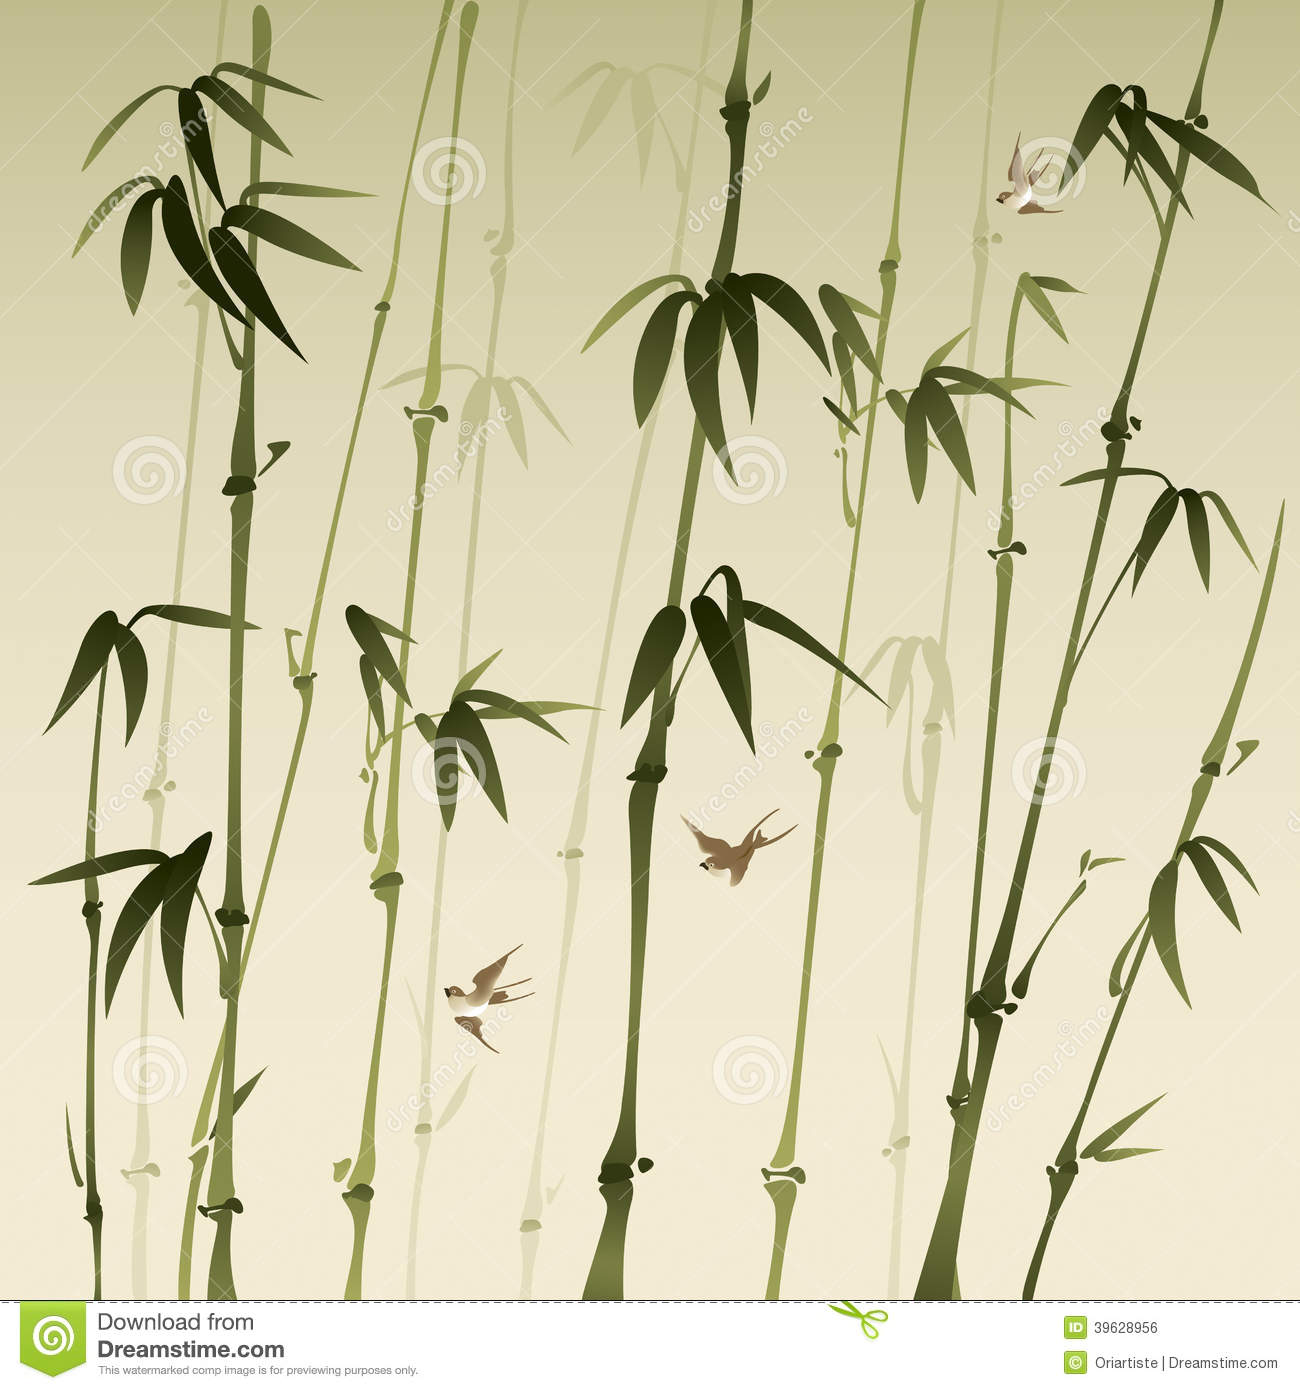 Bamboo Forest - Revival